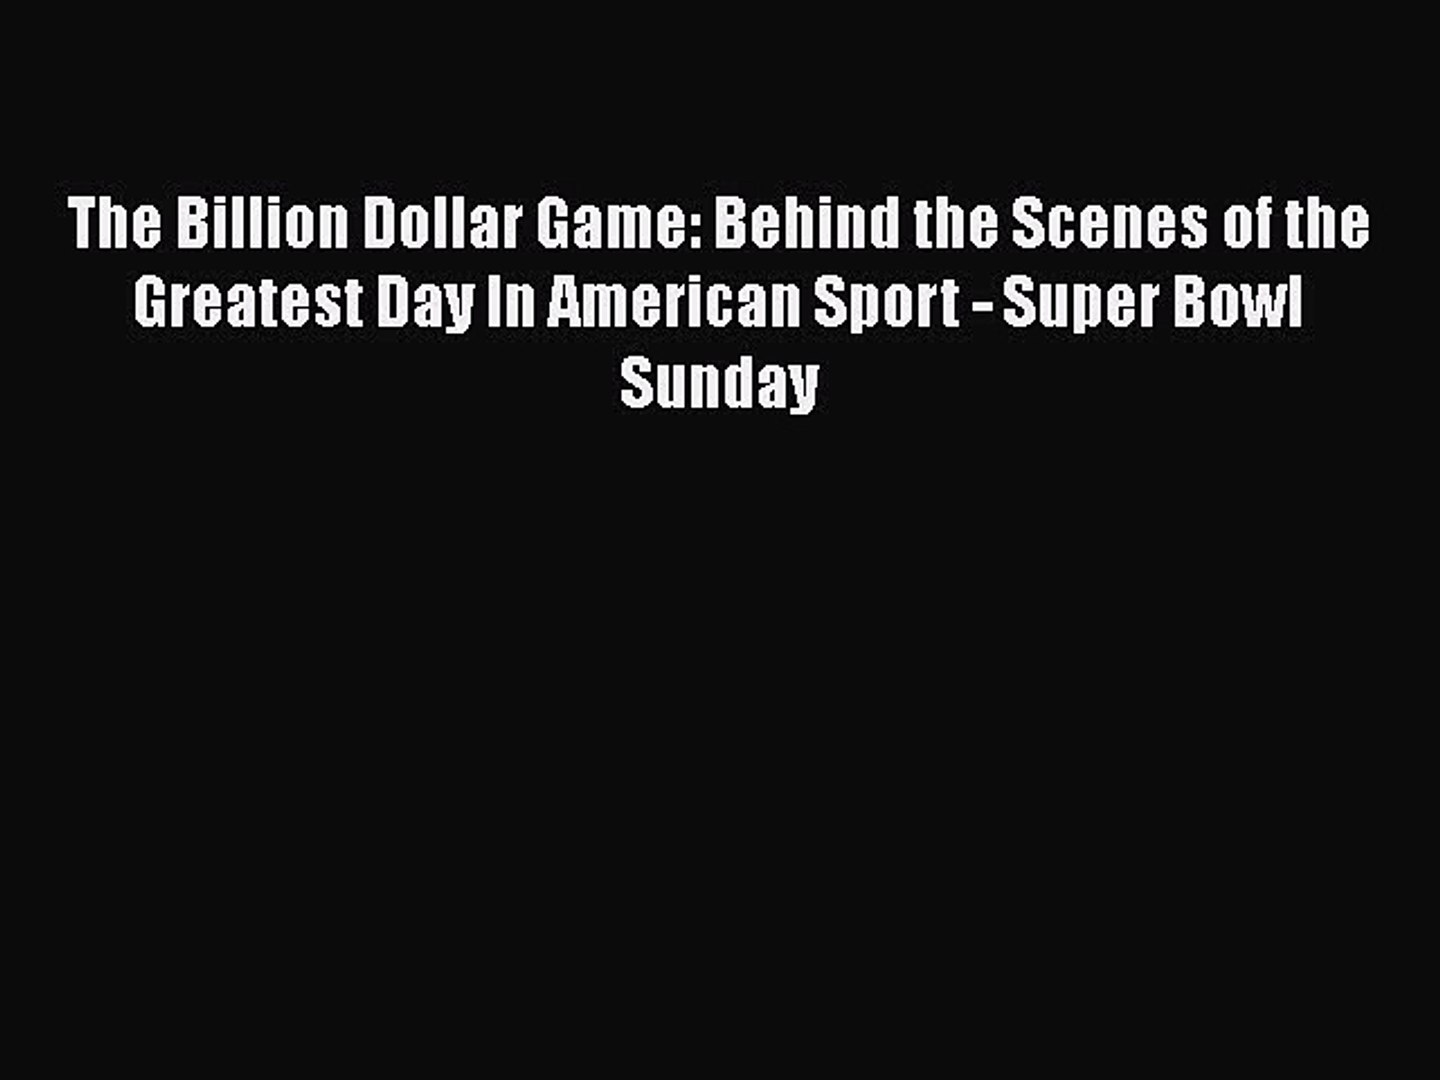 [PDF] The Billion Dollar Game: Behind the Scenes of the Greatest Day In American Sport - Super